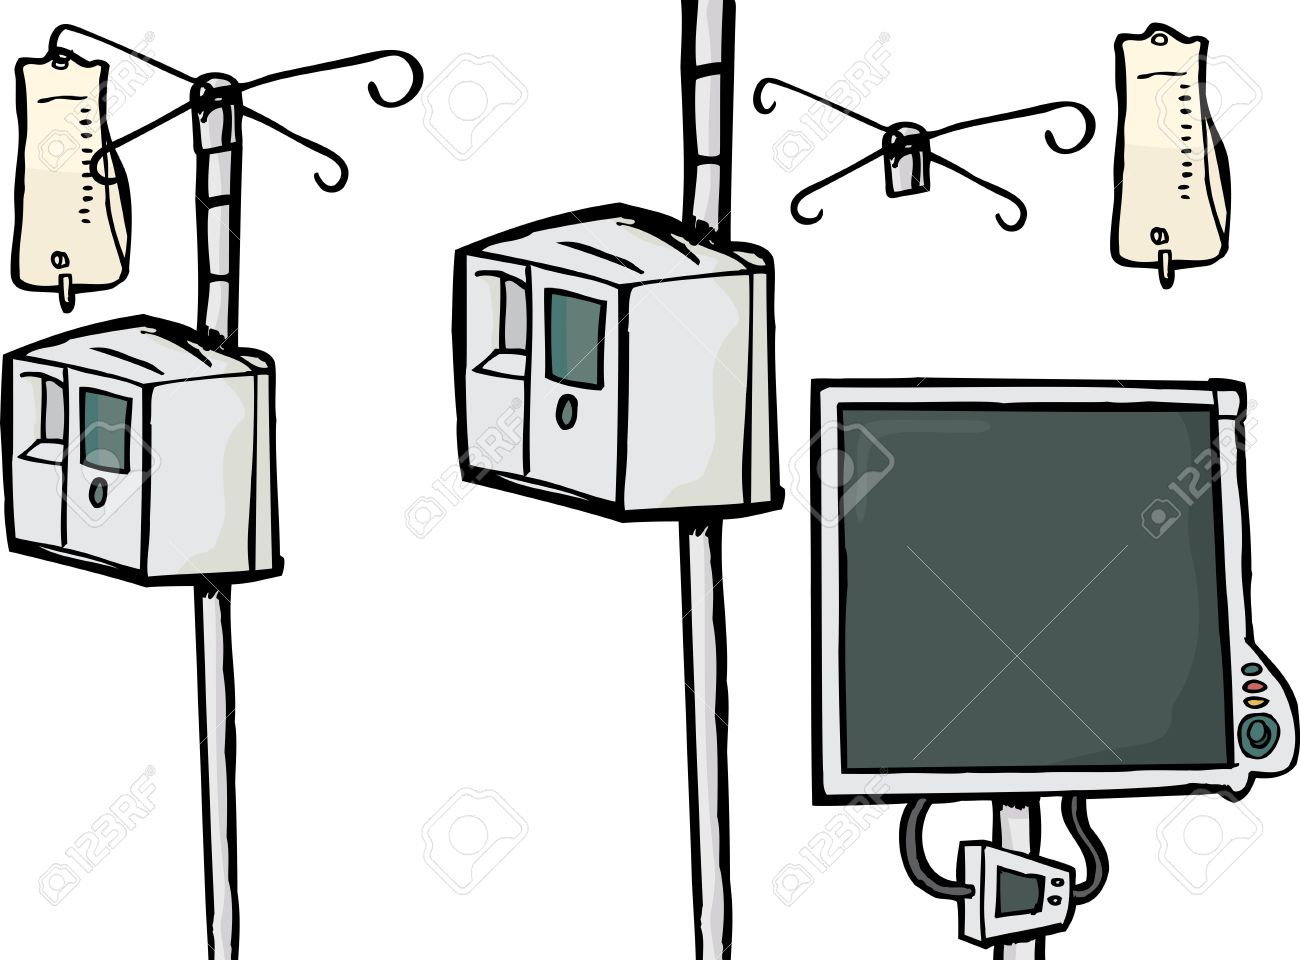 Intravenous Drip Objects And Heart Rate Monitor Over White.